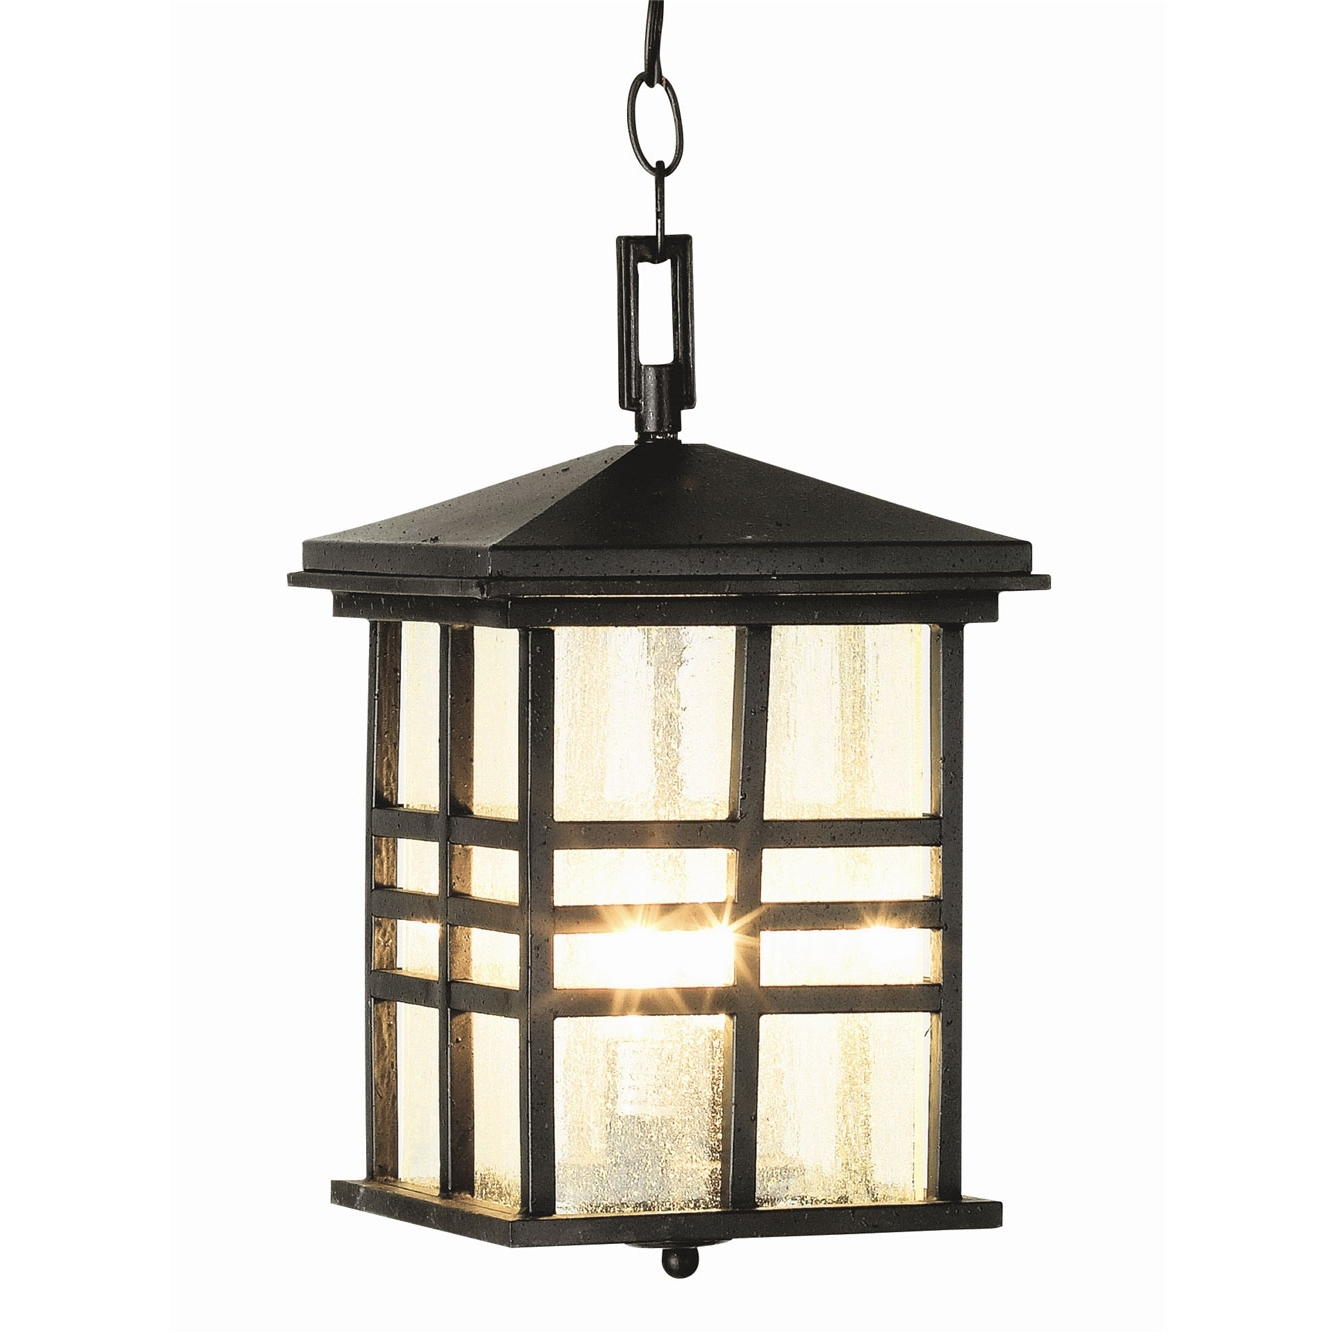 Lighting : Tasty Outdoor Hanging Light Fixtures Collection For Throughout Popular Rustic Outdoor Hanging Lights (View 6 of 20)